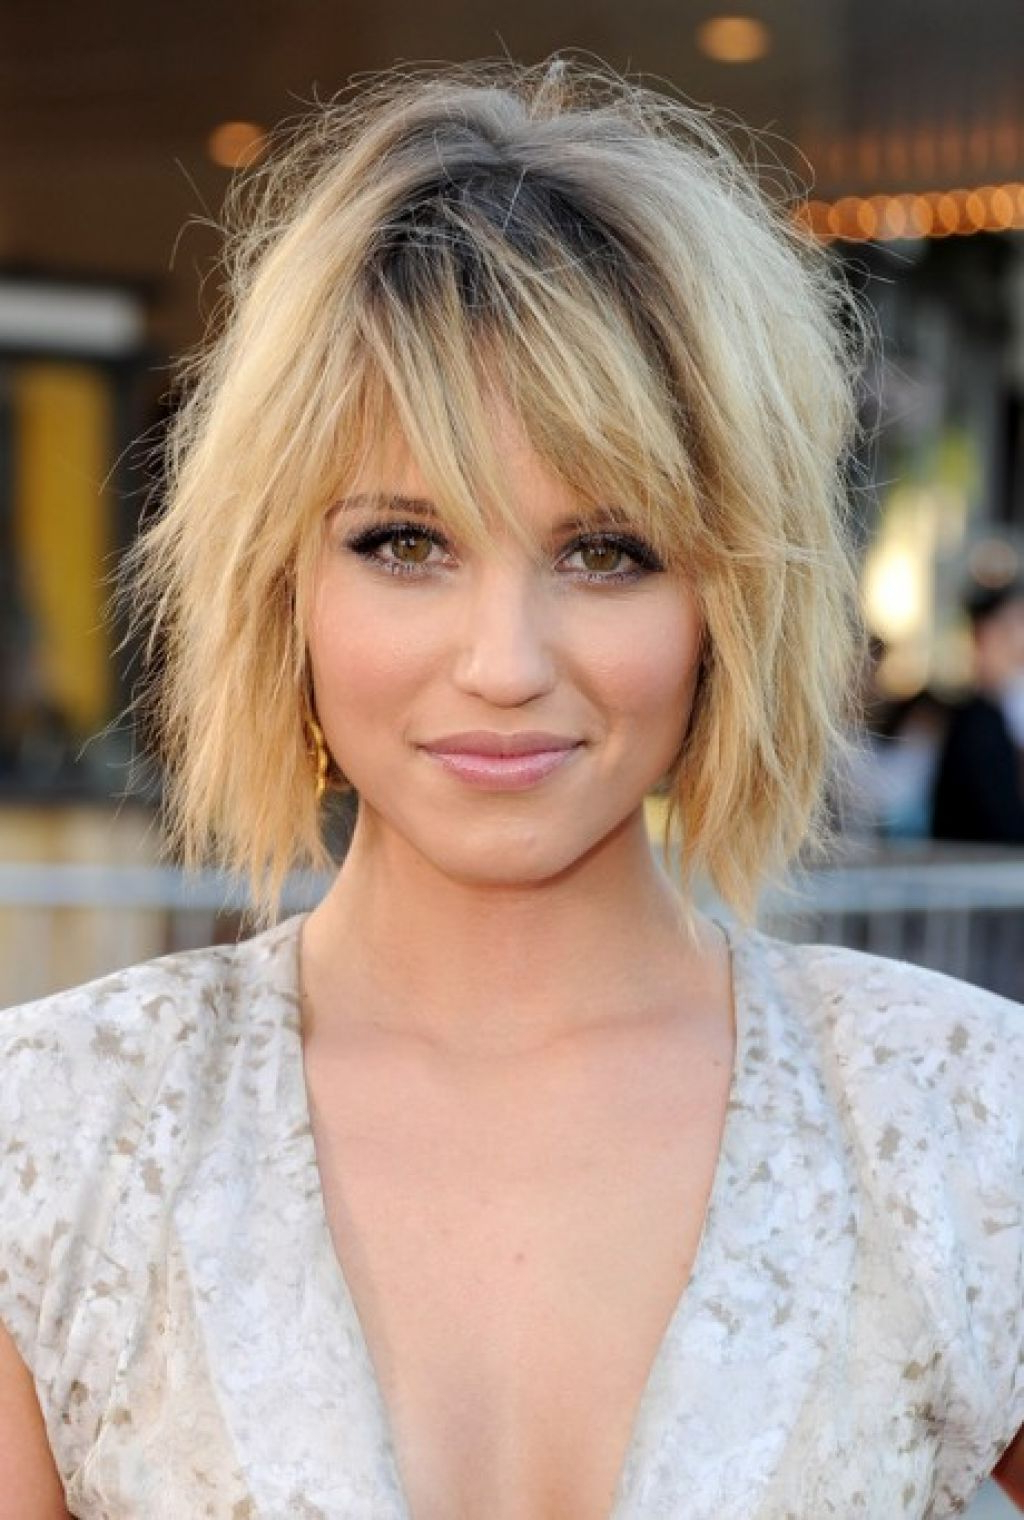 Short Bob With Long Layers Layered Bob With Bangs Women Hairstyle Trendy Within Textured Bob Haircuts With Bangs (View 14 of 20)